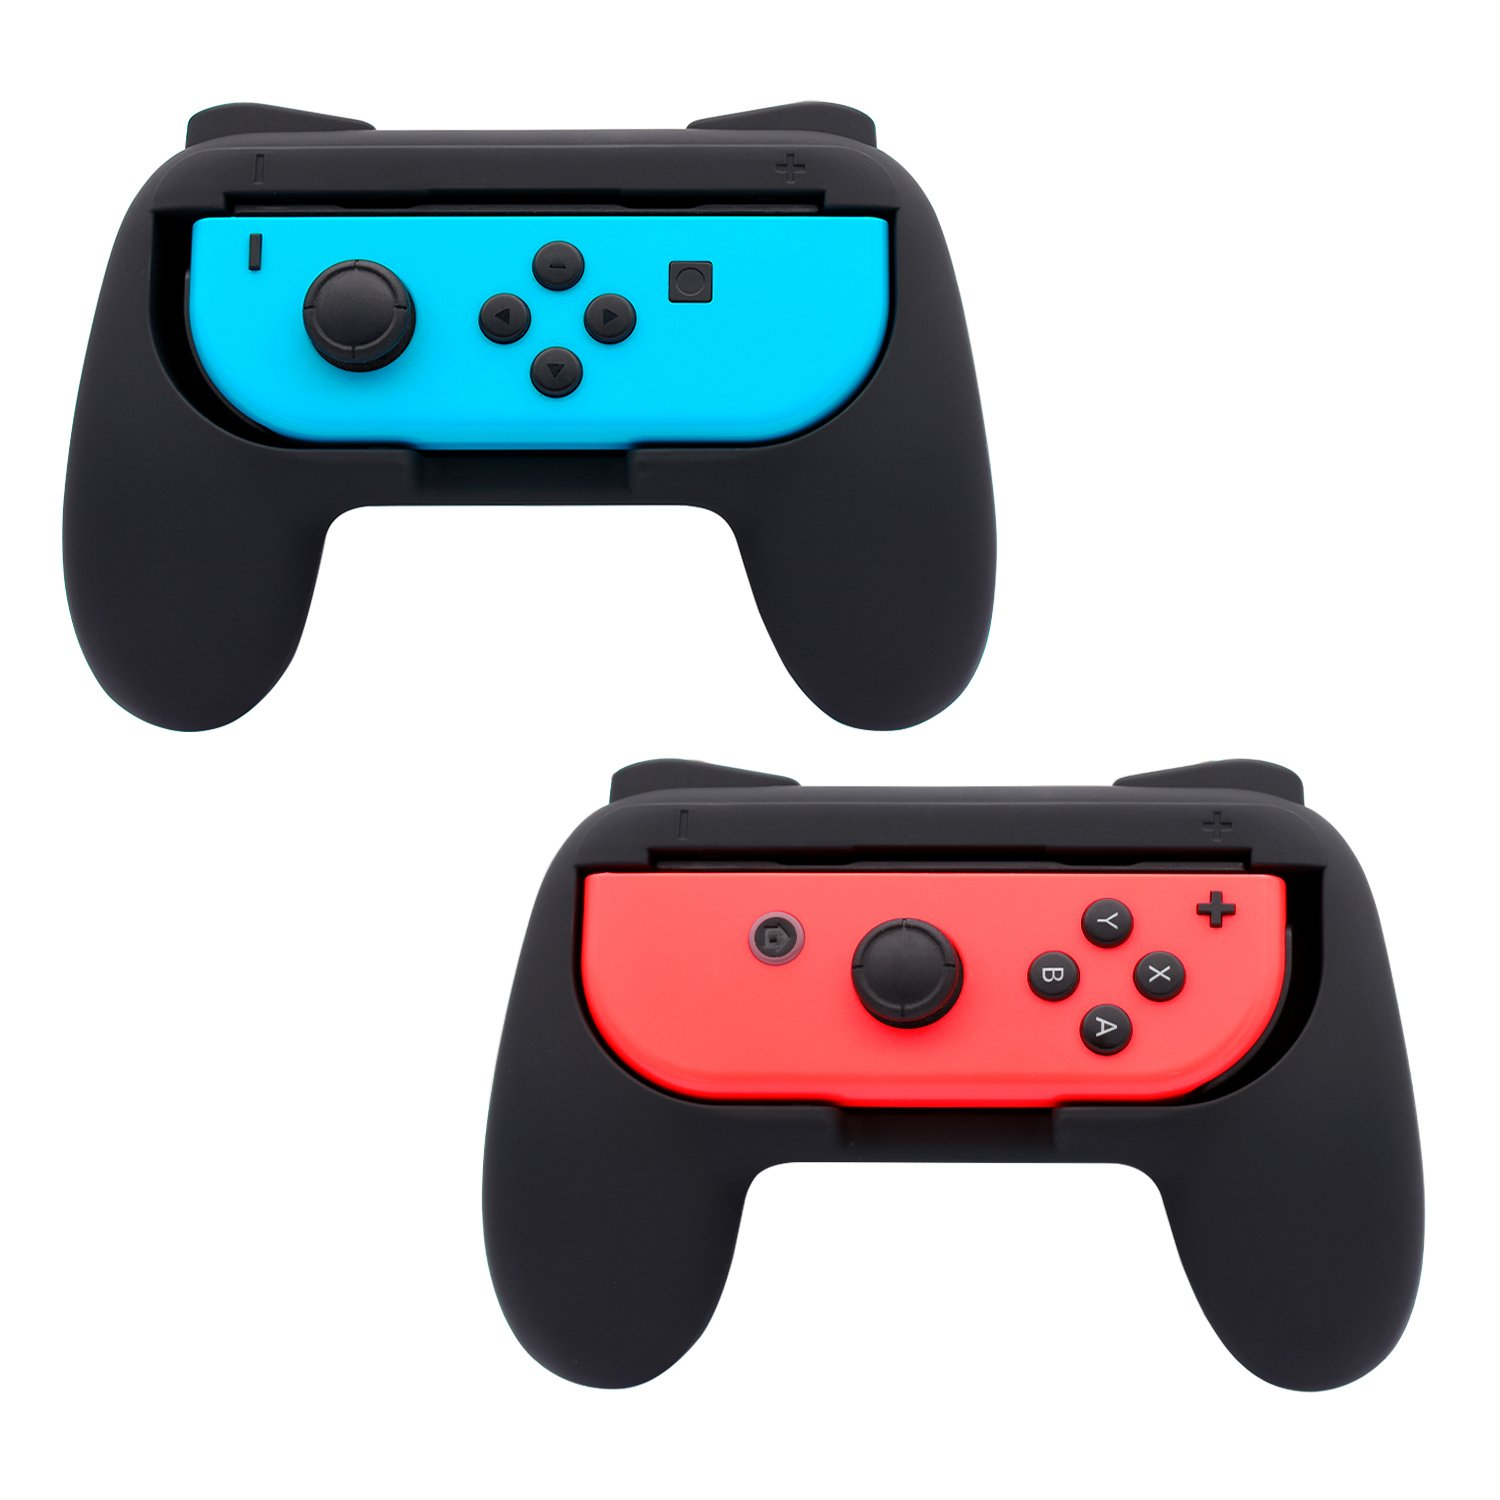 FASTSNAIL Grips for Nintendo Switch Joy-Con, Wear-resistant Handle Kit for Switch Joy Cons Controller, 2 Pack (Black) by FASTSNAIL (Image #1)